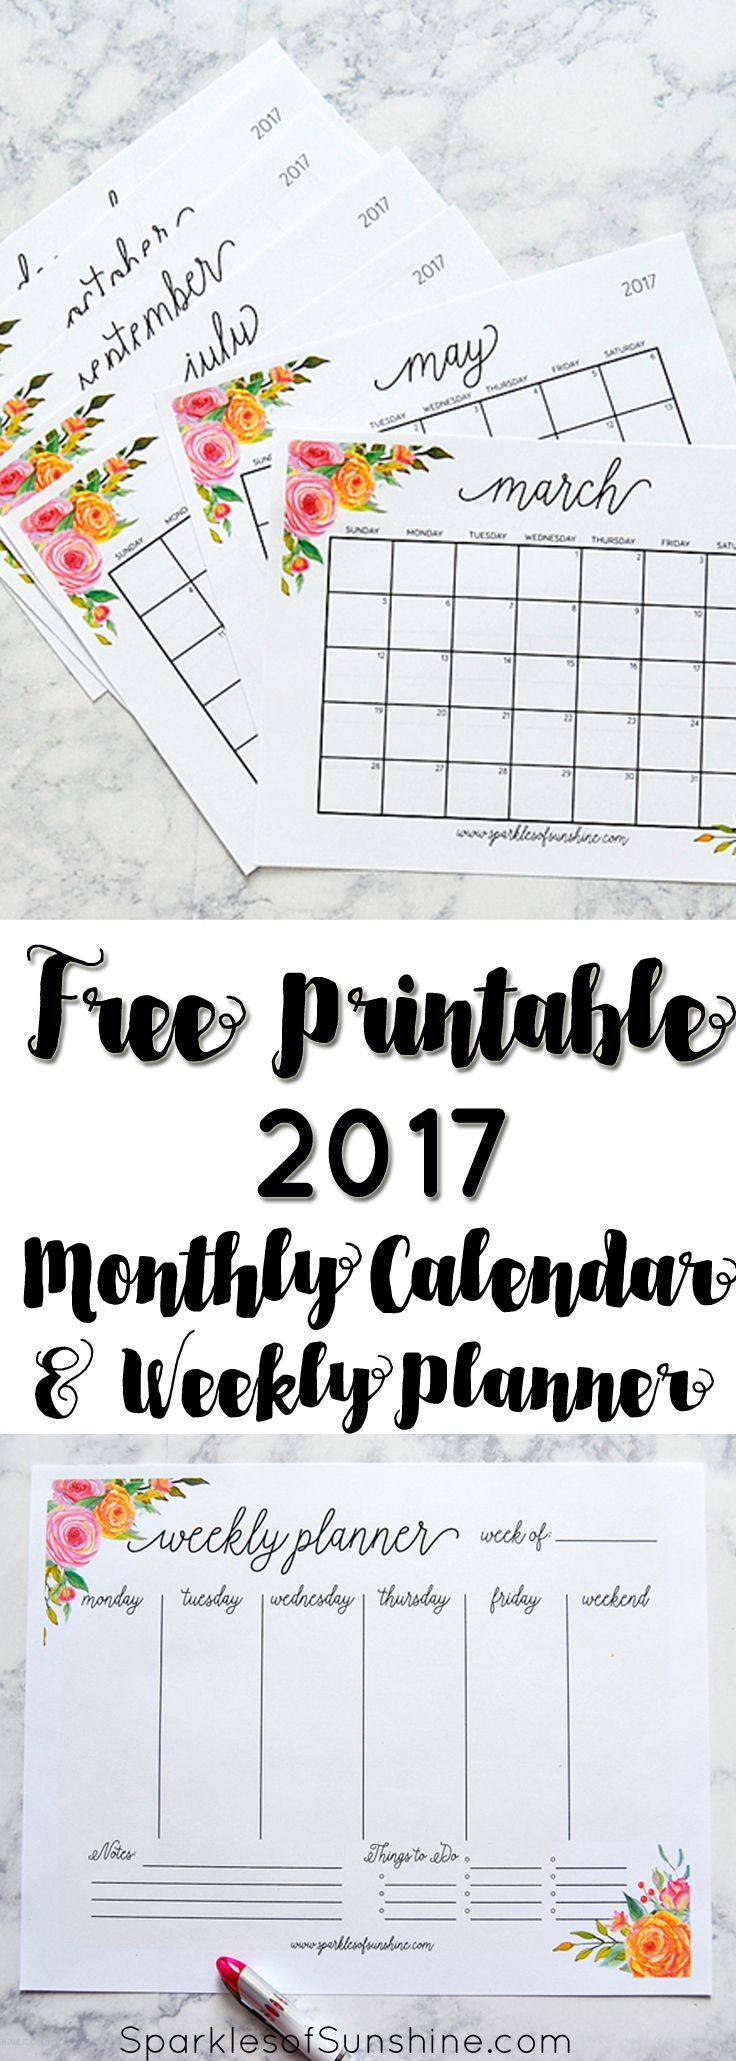 Free Printable 2017 Monthly Calendar and Weekly Planner ...